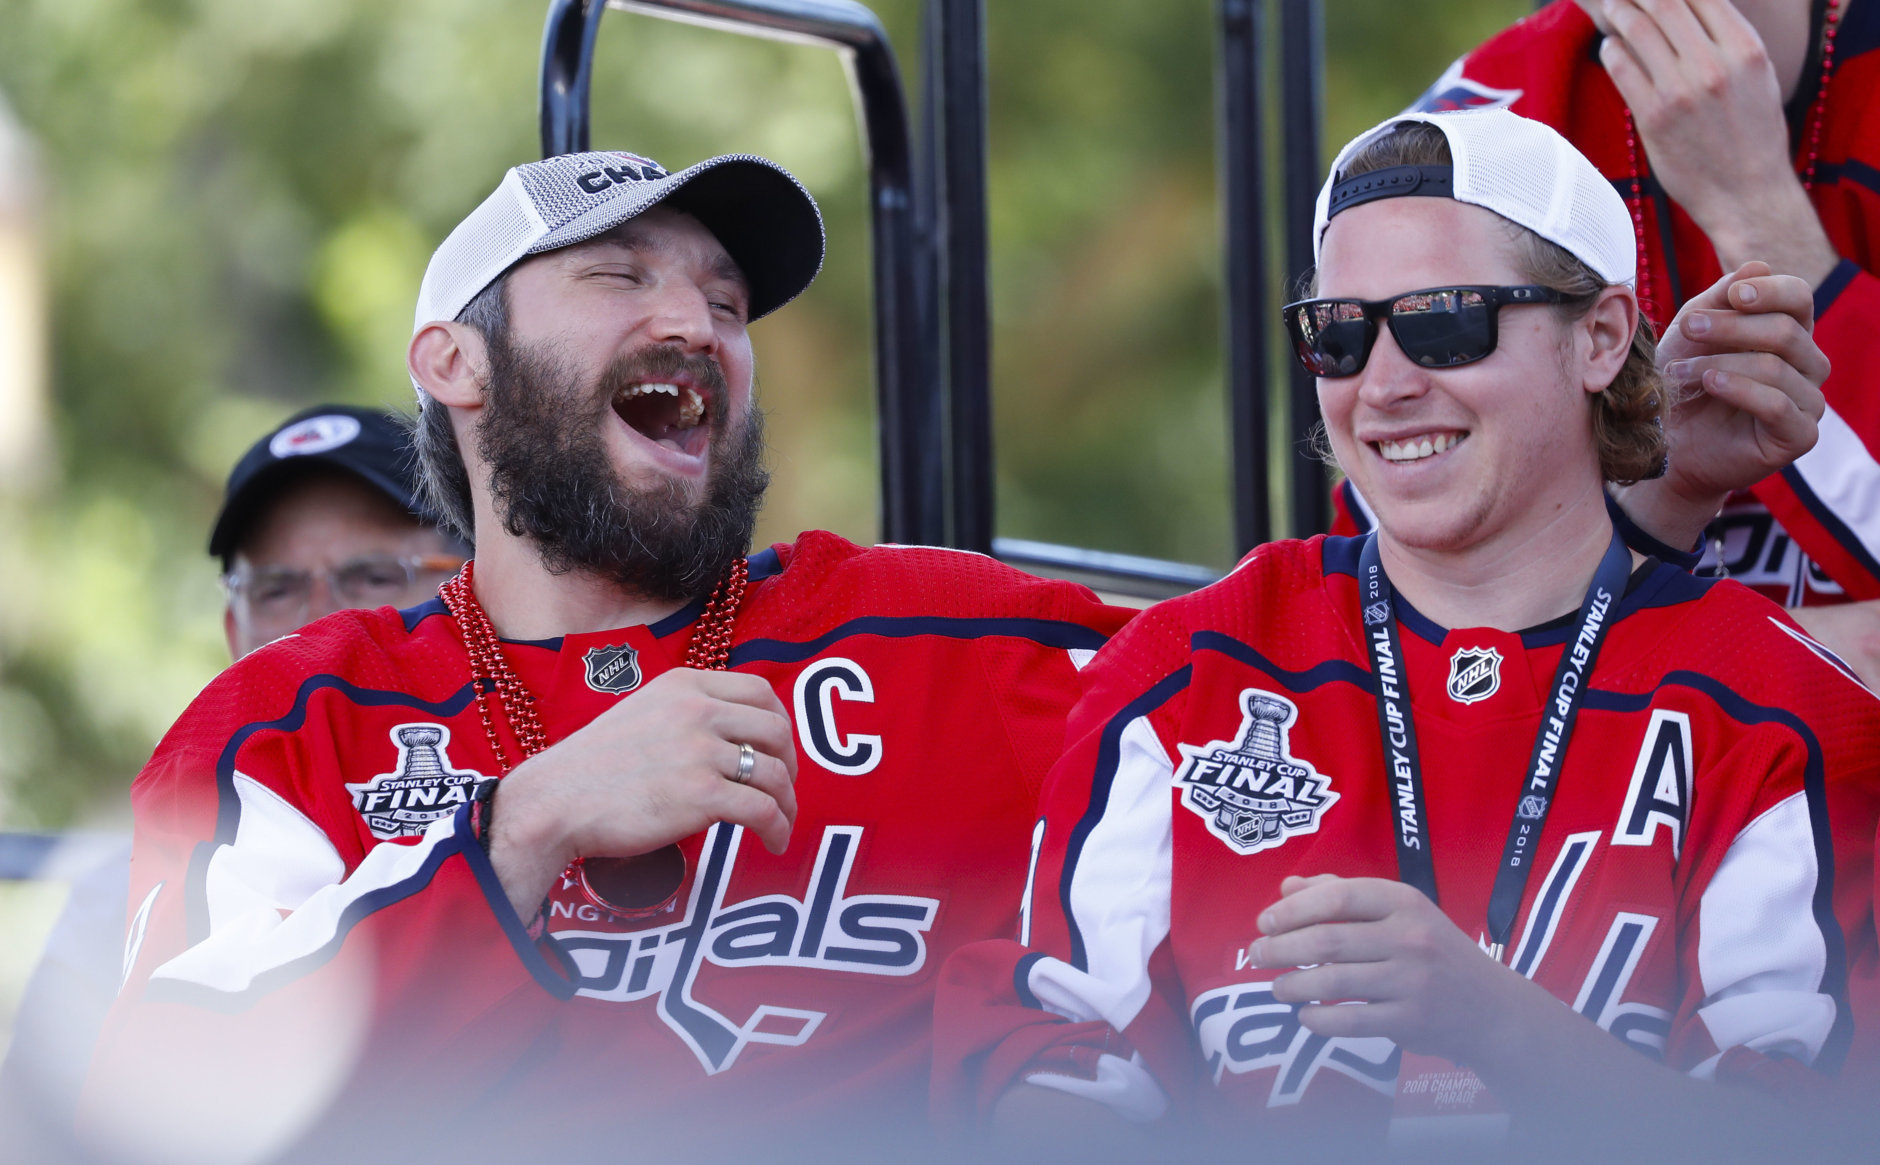 Washington Capitals forward Alex Ovechkin (8), of Russia, left, laughs as he sits next to teammate, forward Nicklas Backstrom (19), of Sweden, right, while on stage during the Stanley Cup victory celebration on the National Mall in Washington, Tuesday, June 12, 2018. (AP Photo/Pablo Martinez Monsivais)